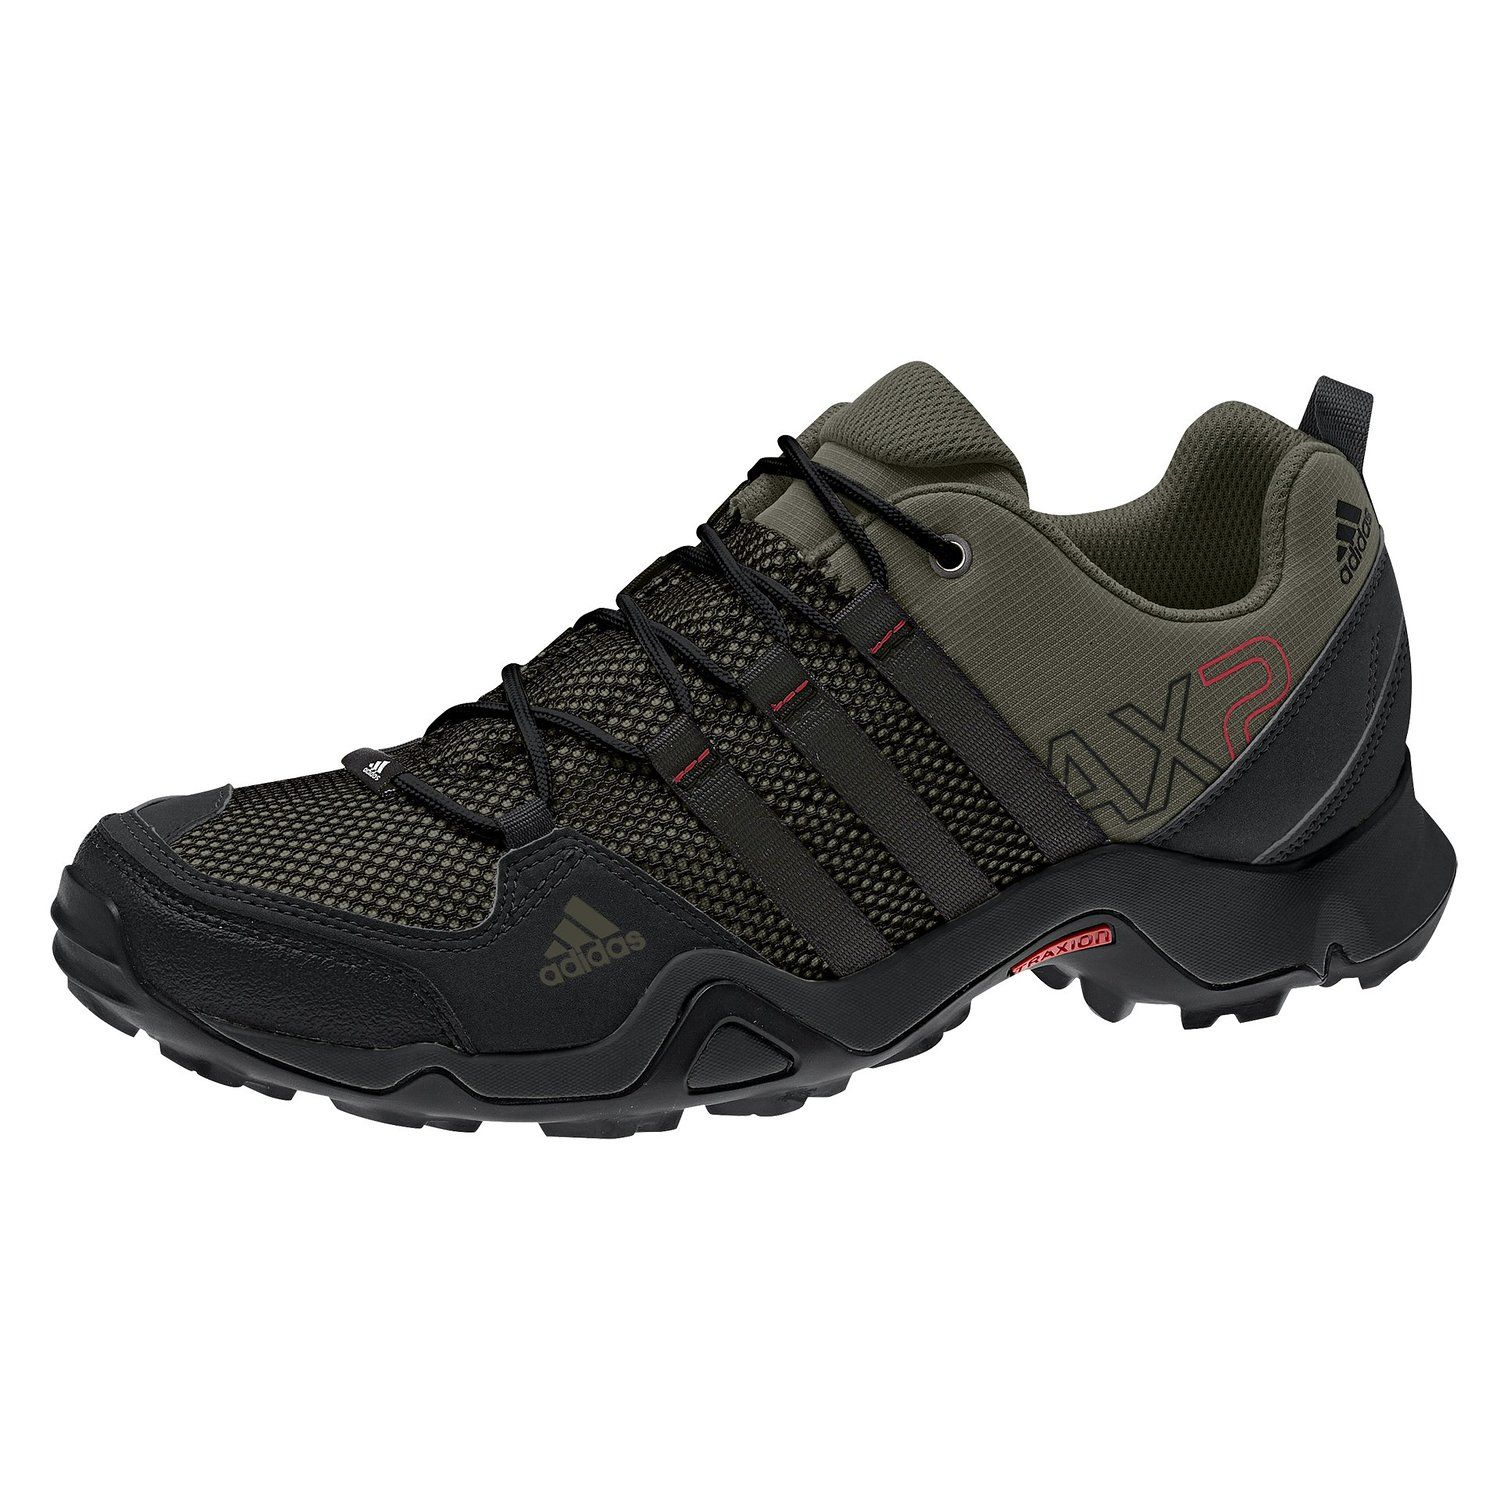 3f1e42a567639 Amazon.com: adidas Outdoor AX2 Hiking Shoe - Men's: Shoes | men's ...